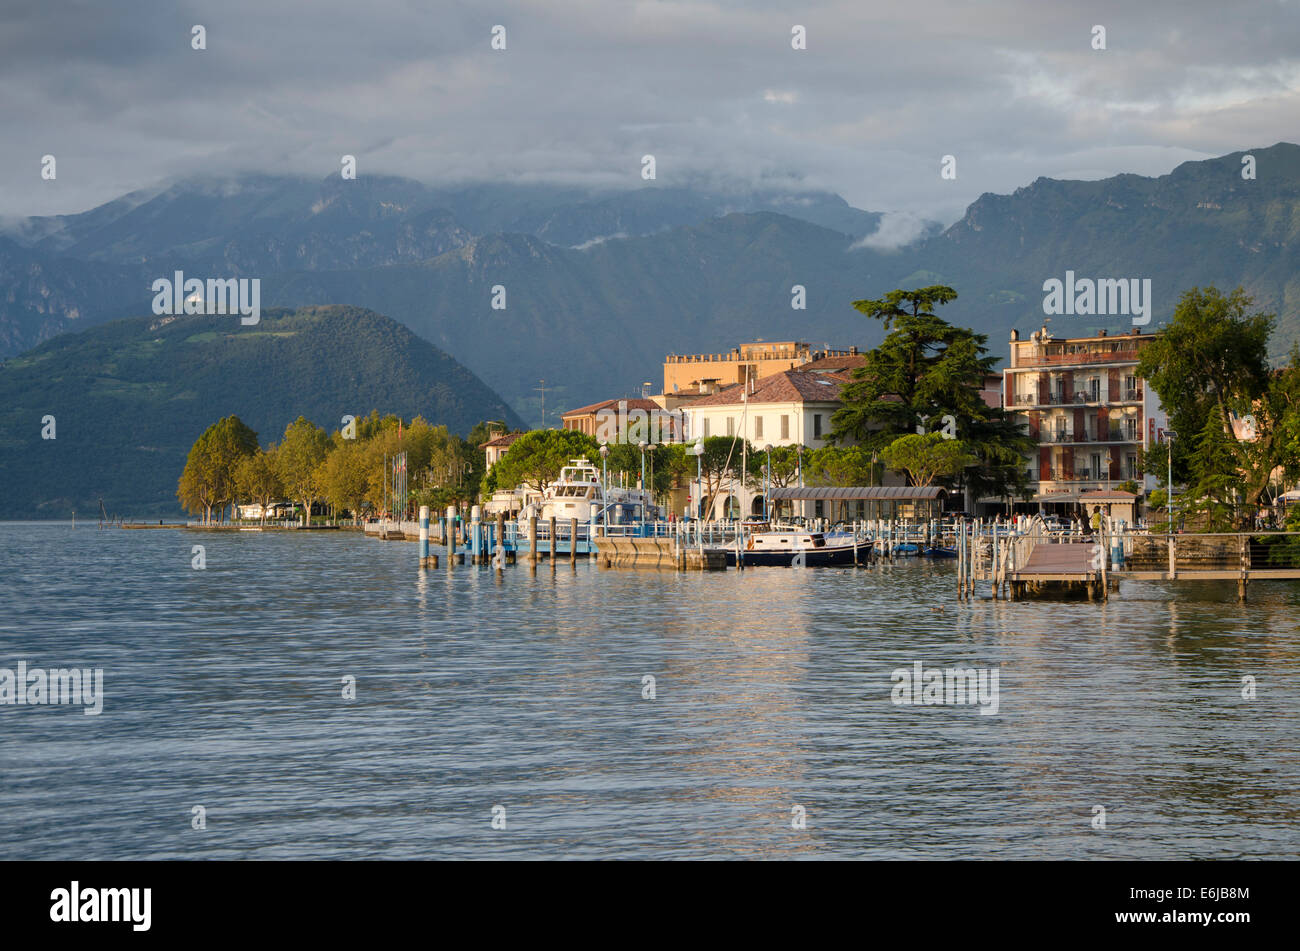 Lake Iseo or Lago d'Iseo or Sebino with the quai of Iseo, Lombardy region. Northern Italy. - Stock Image